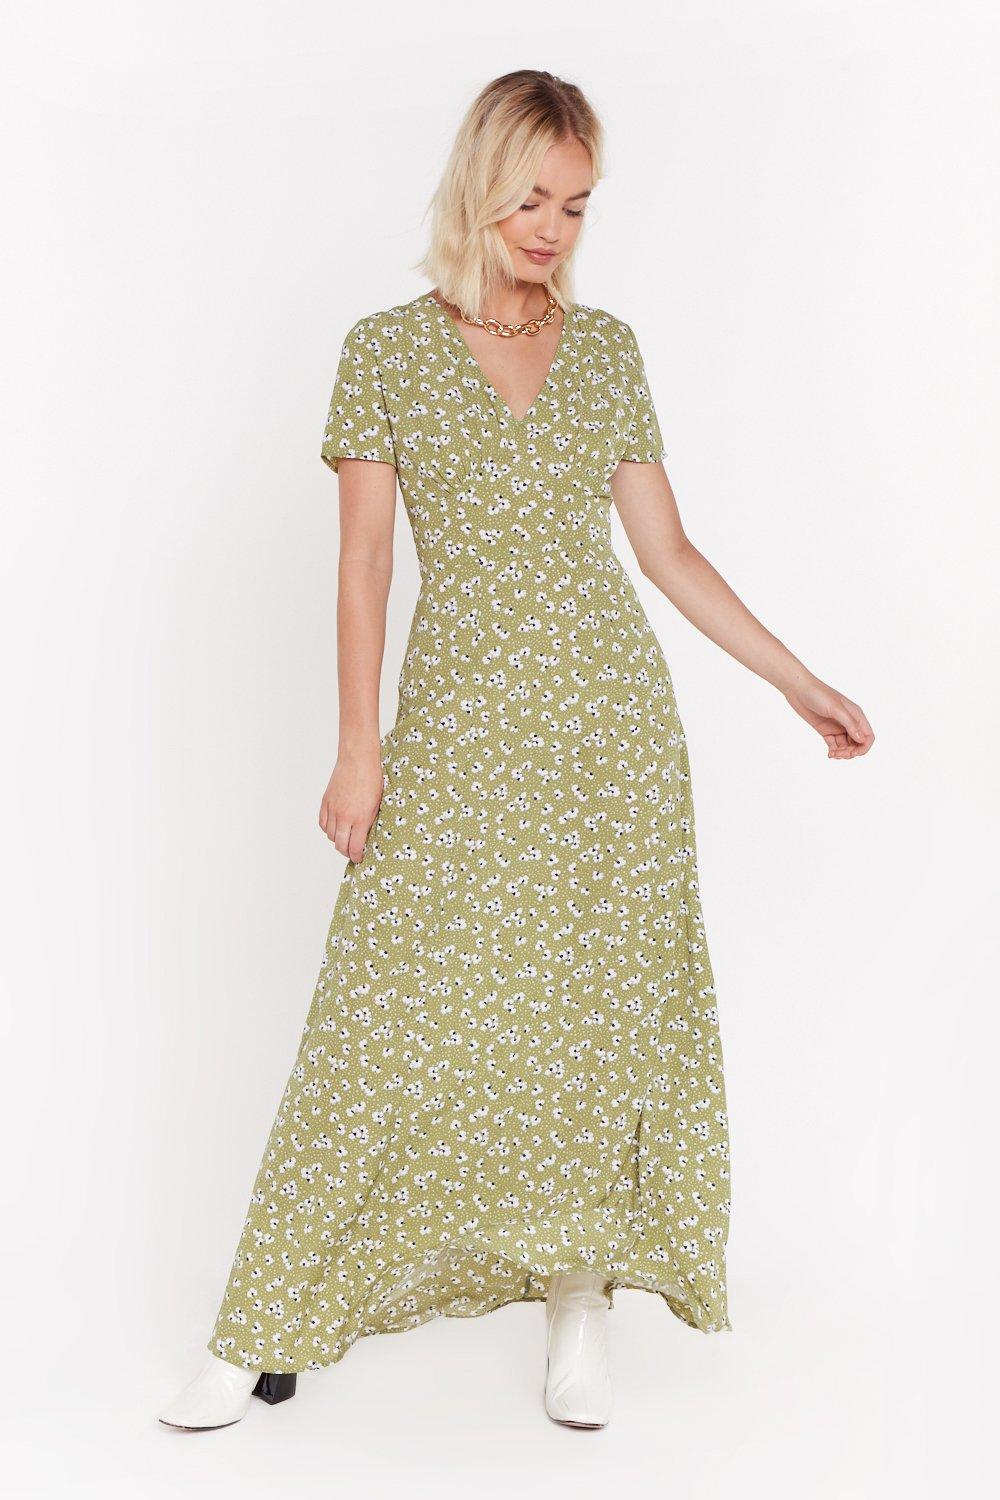 Plant Stop This Feeling Floral Maxi Dress by Nasty Gal